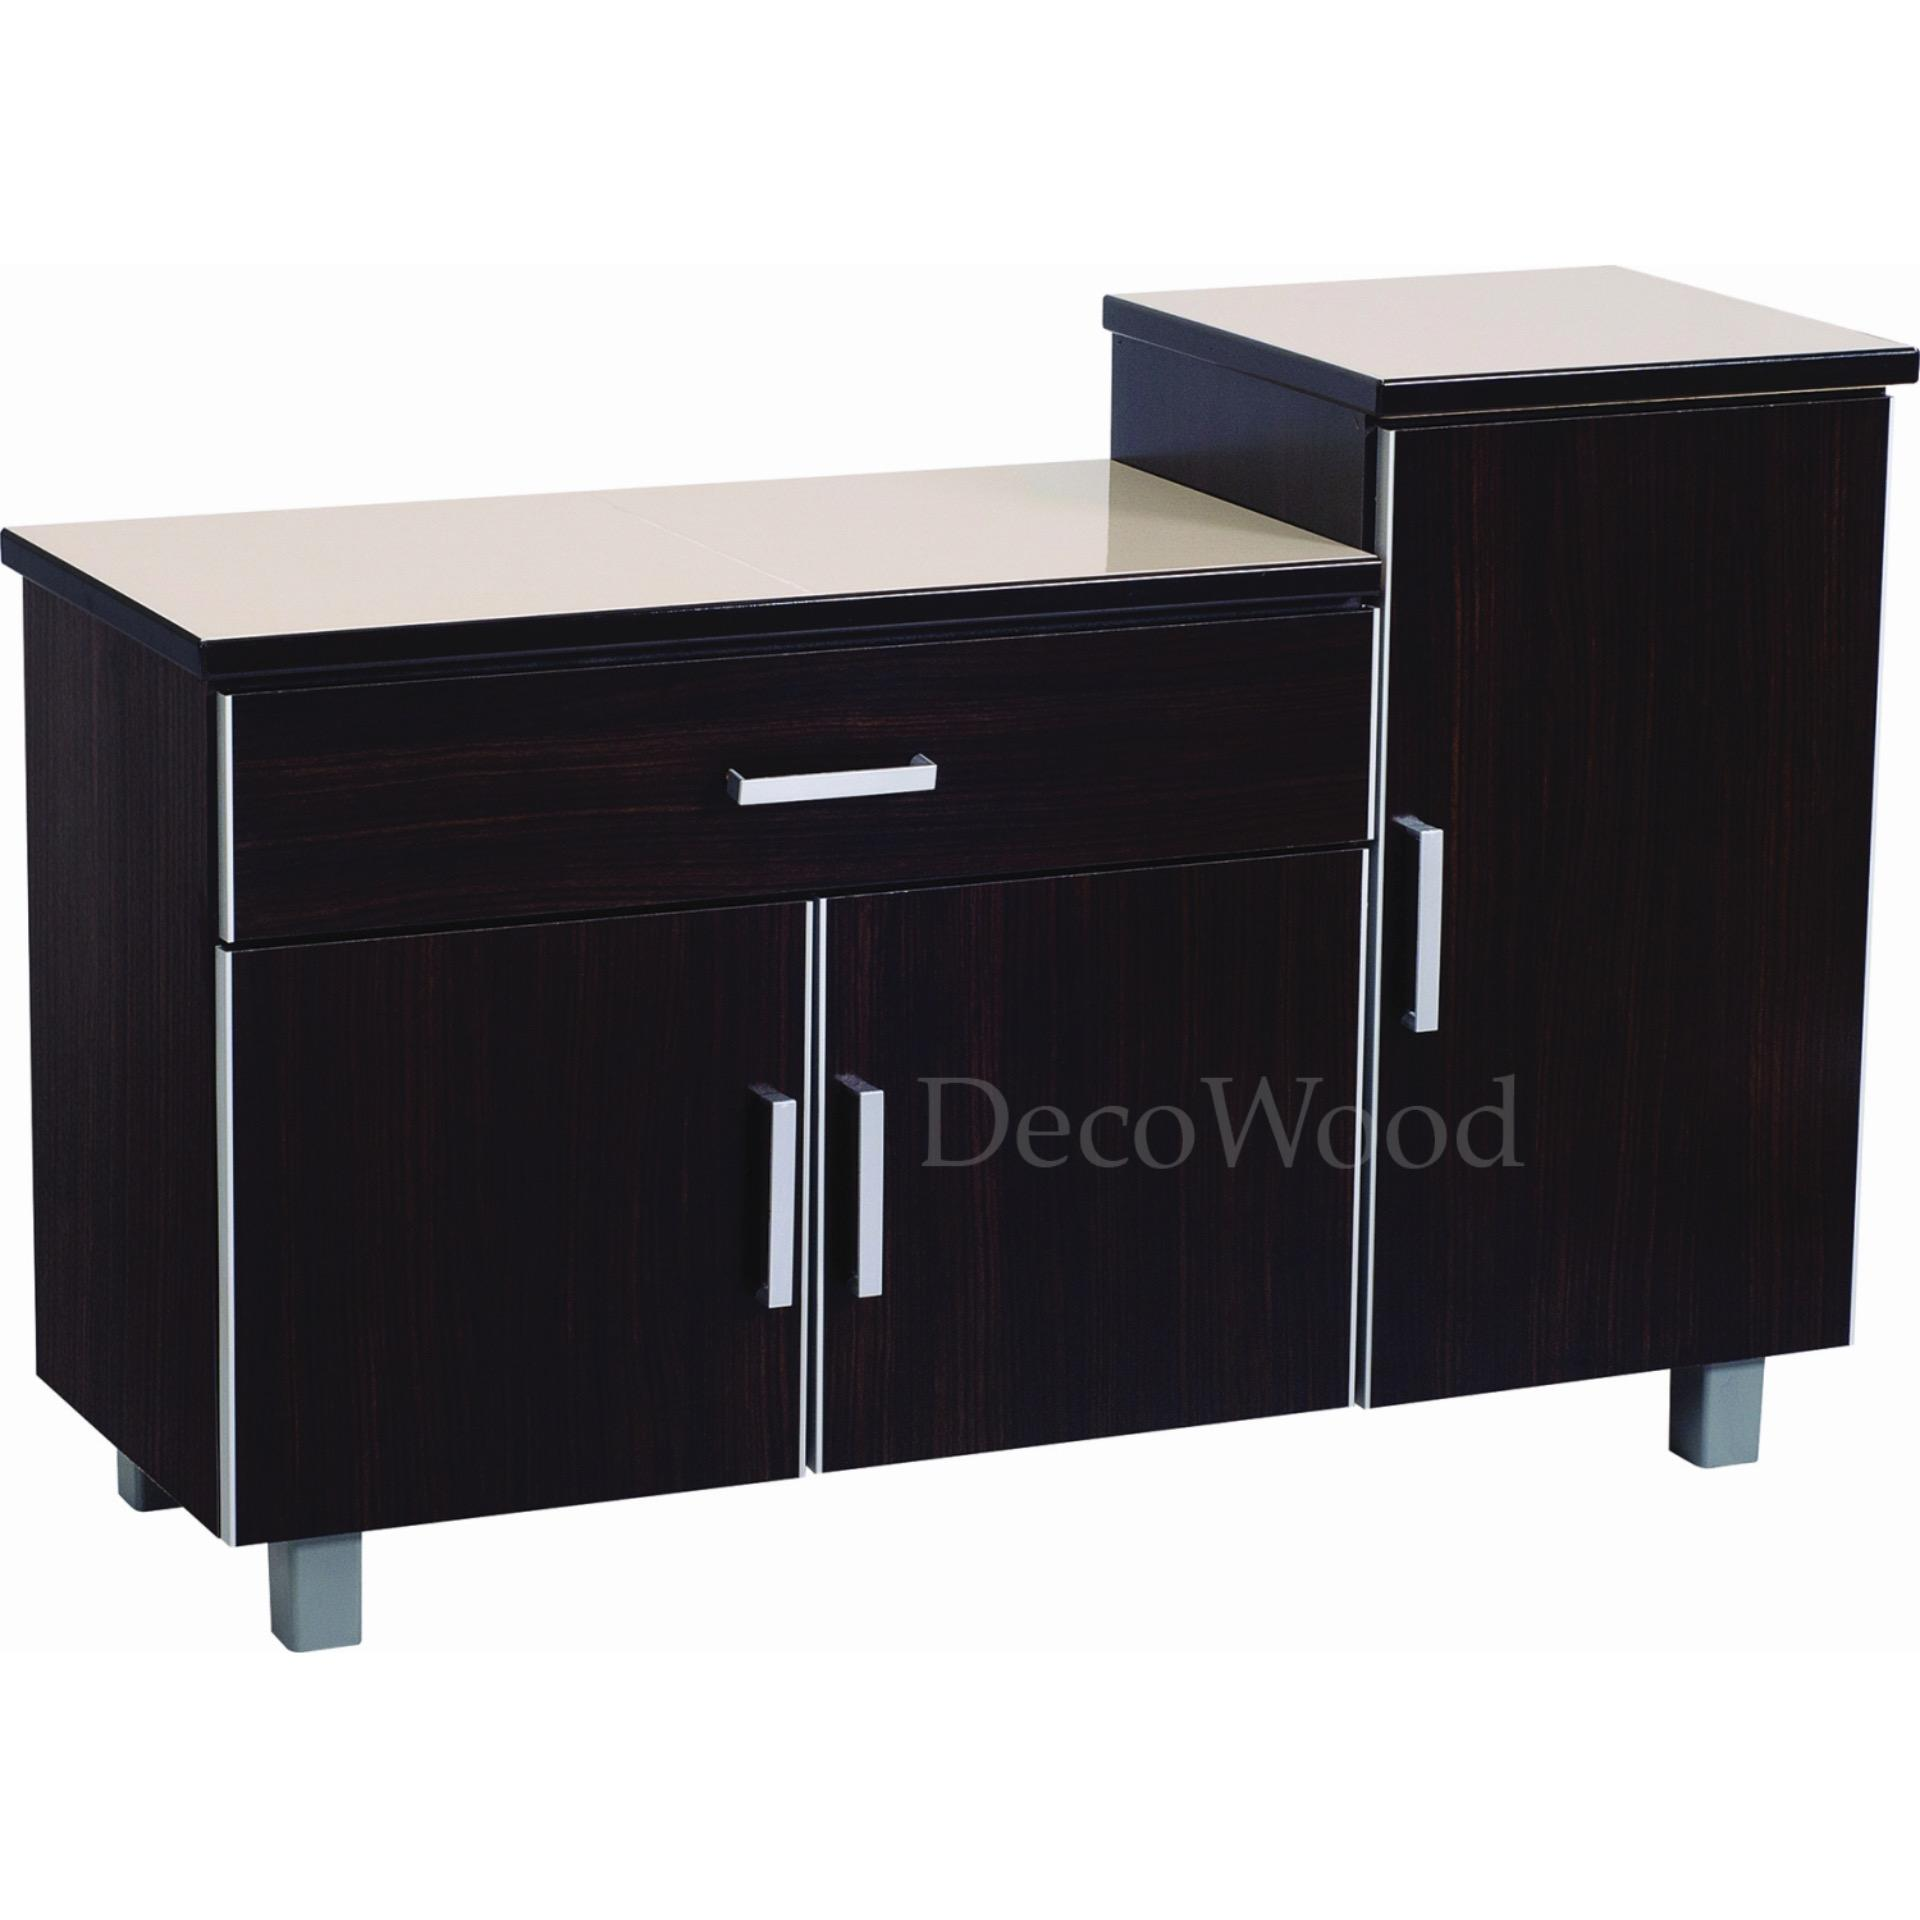 Kitchen Cabinets Wholesale Michigan: 4-Feet Solid Strong Kitchen Cabinet (end 5/9/2021 12:00 AM